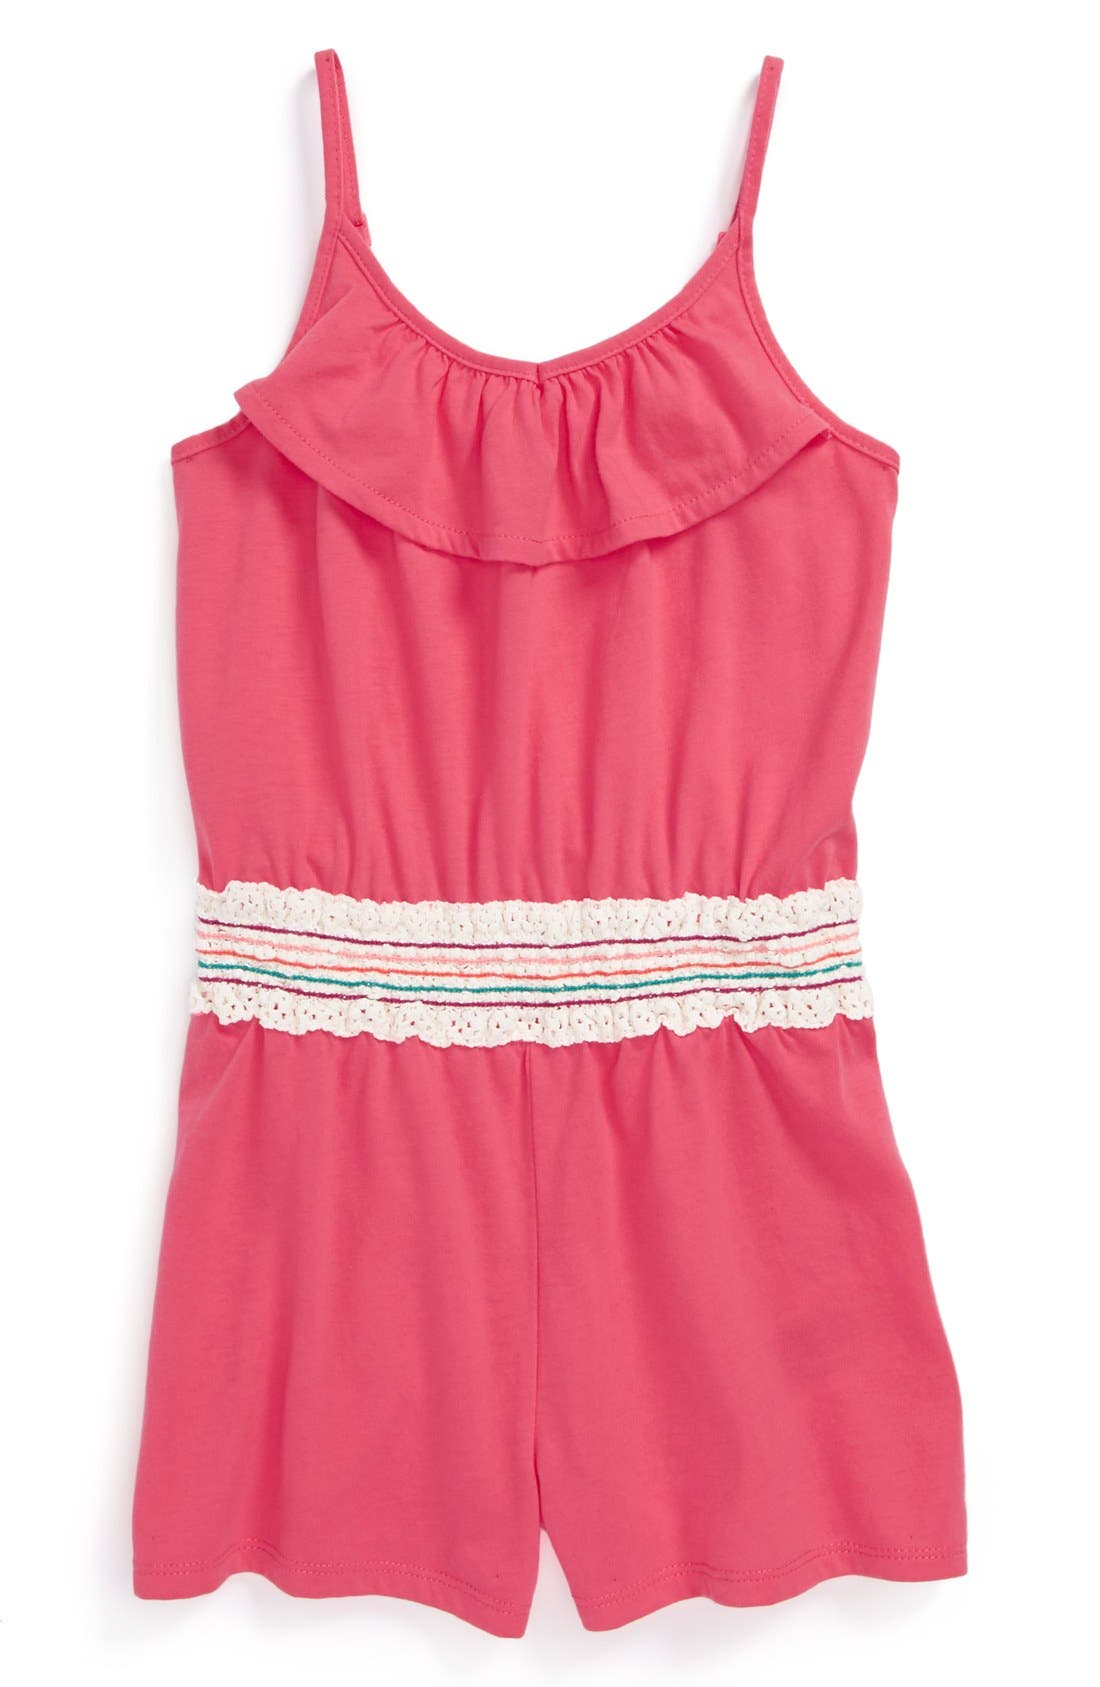 Alternate Image 1 Selected - Roxy 'Creekside' Romper (Little Girls & Big Girls)